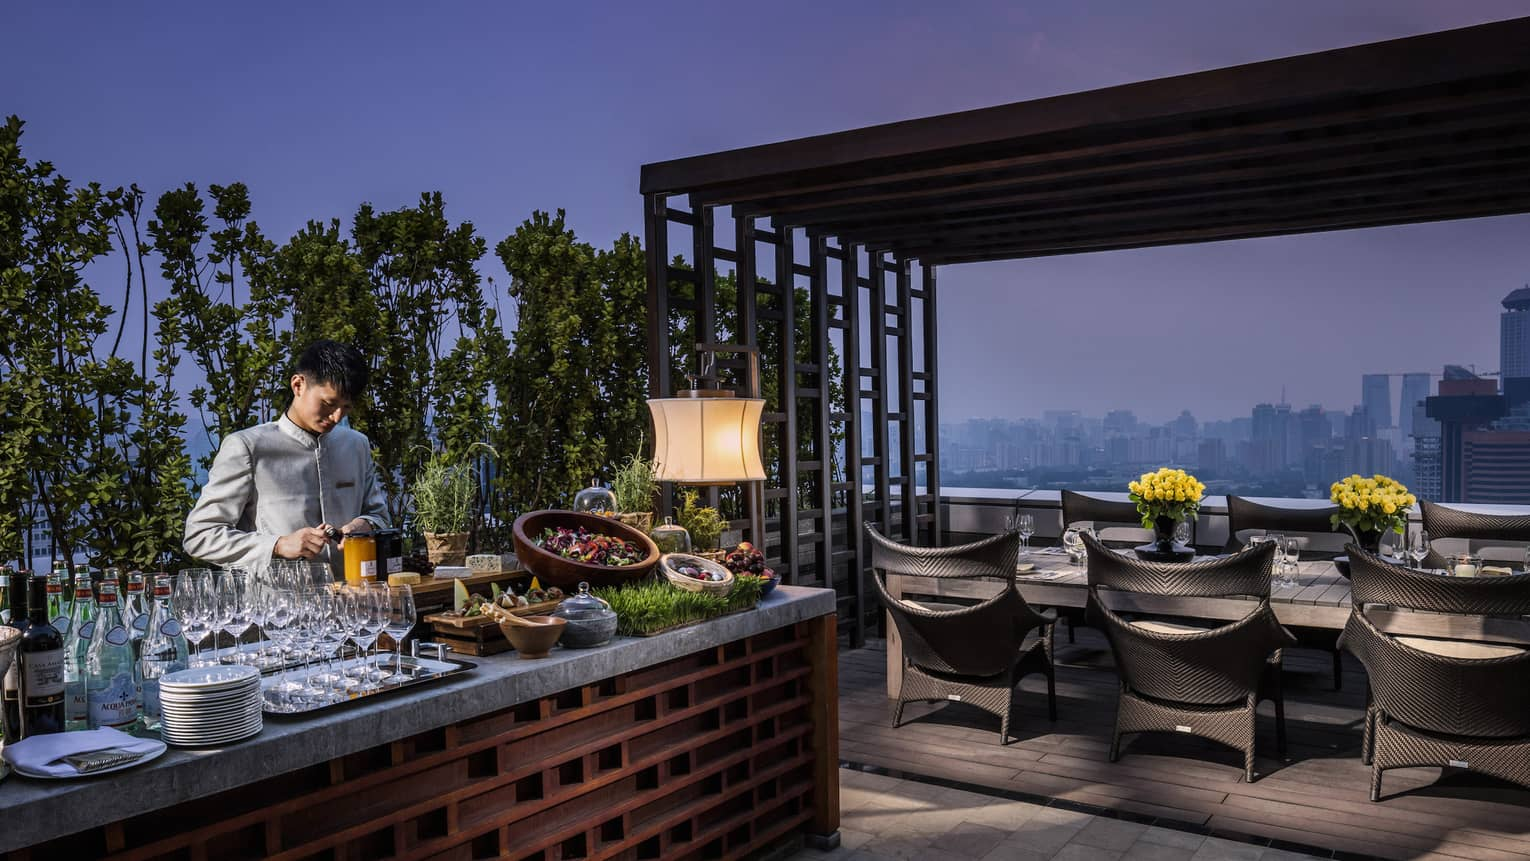 Bartender prepares drinks, cheeses, salads at long Imperial Suite rooftop bar by private dining table at night